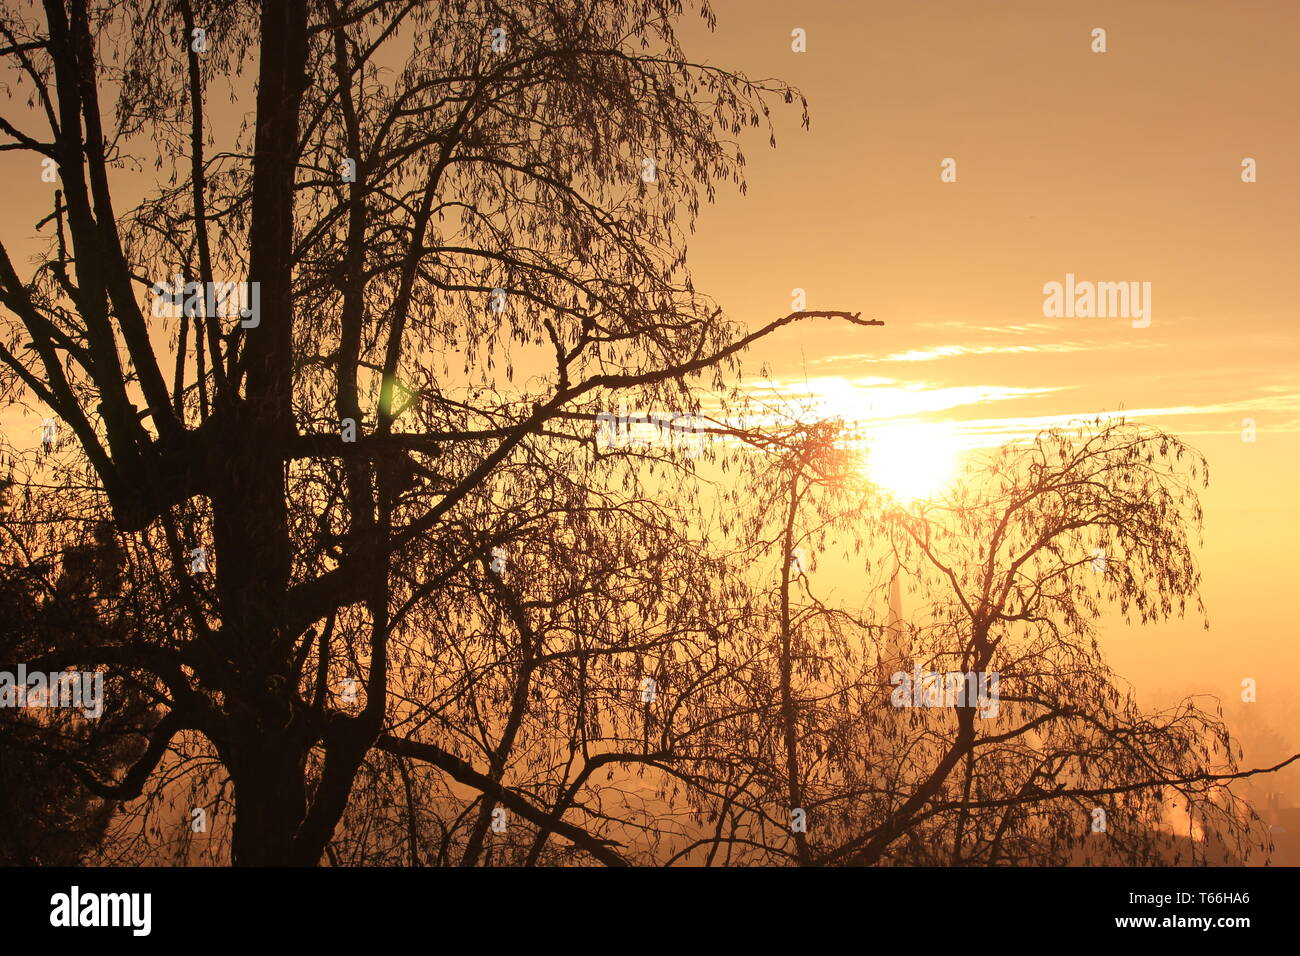 Colorful sunset on a cold winter evening - Stock Image